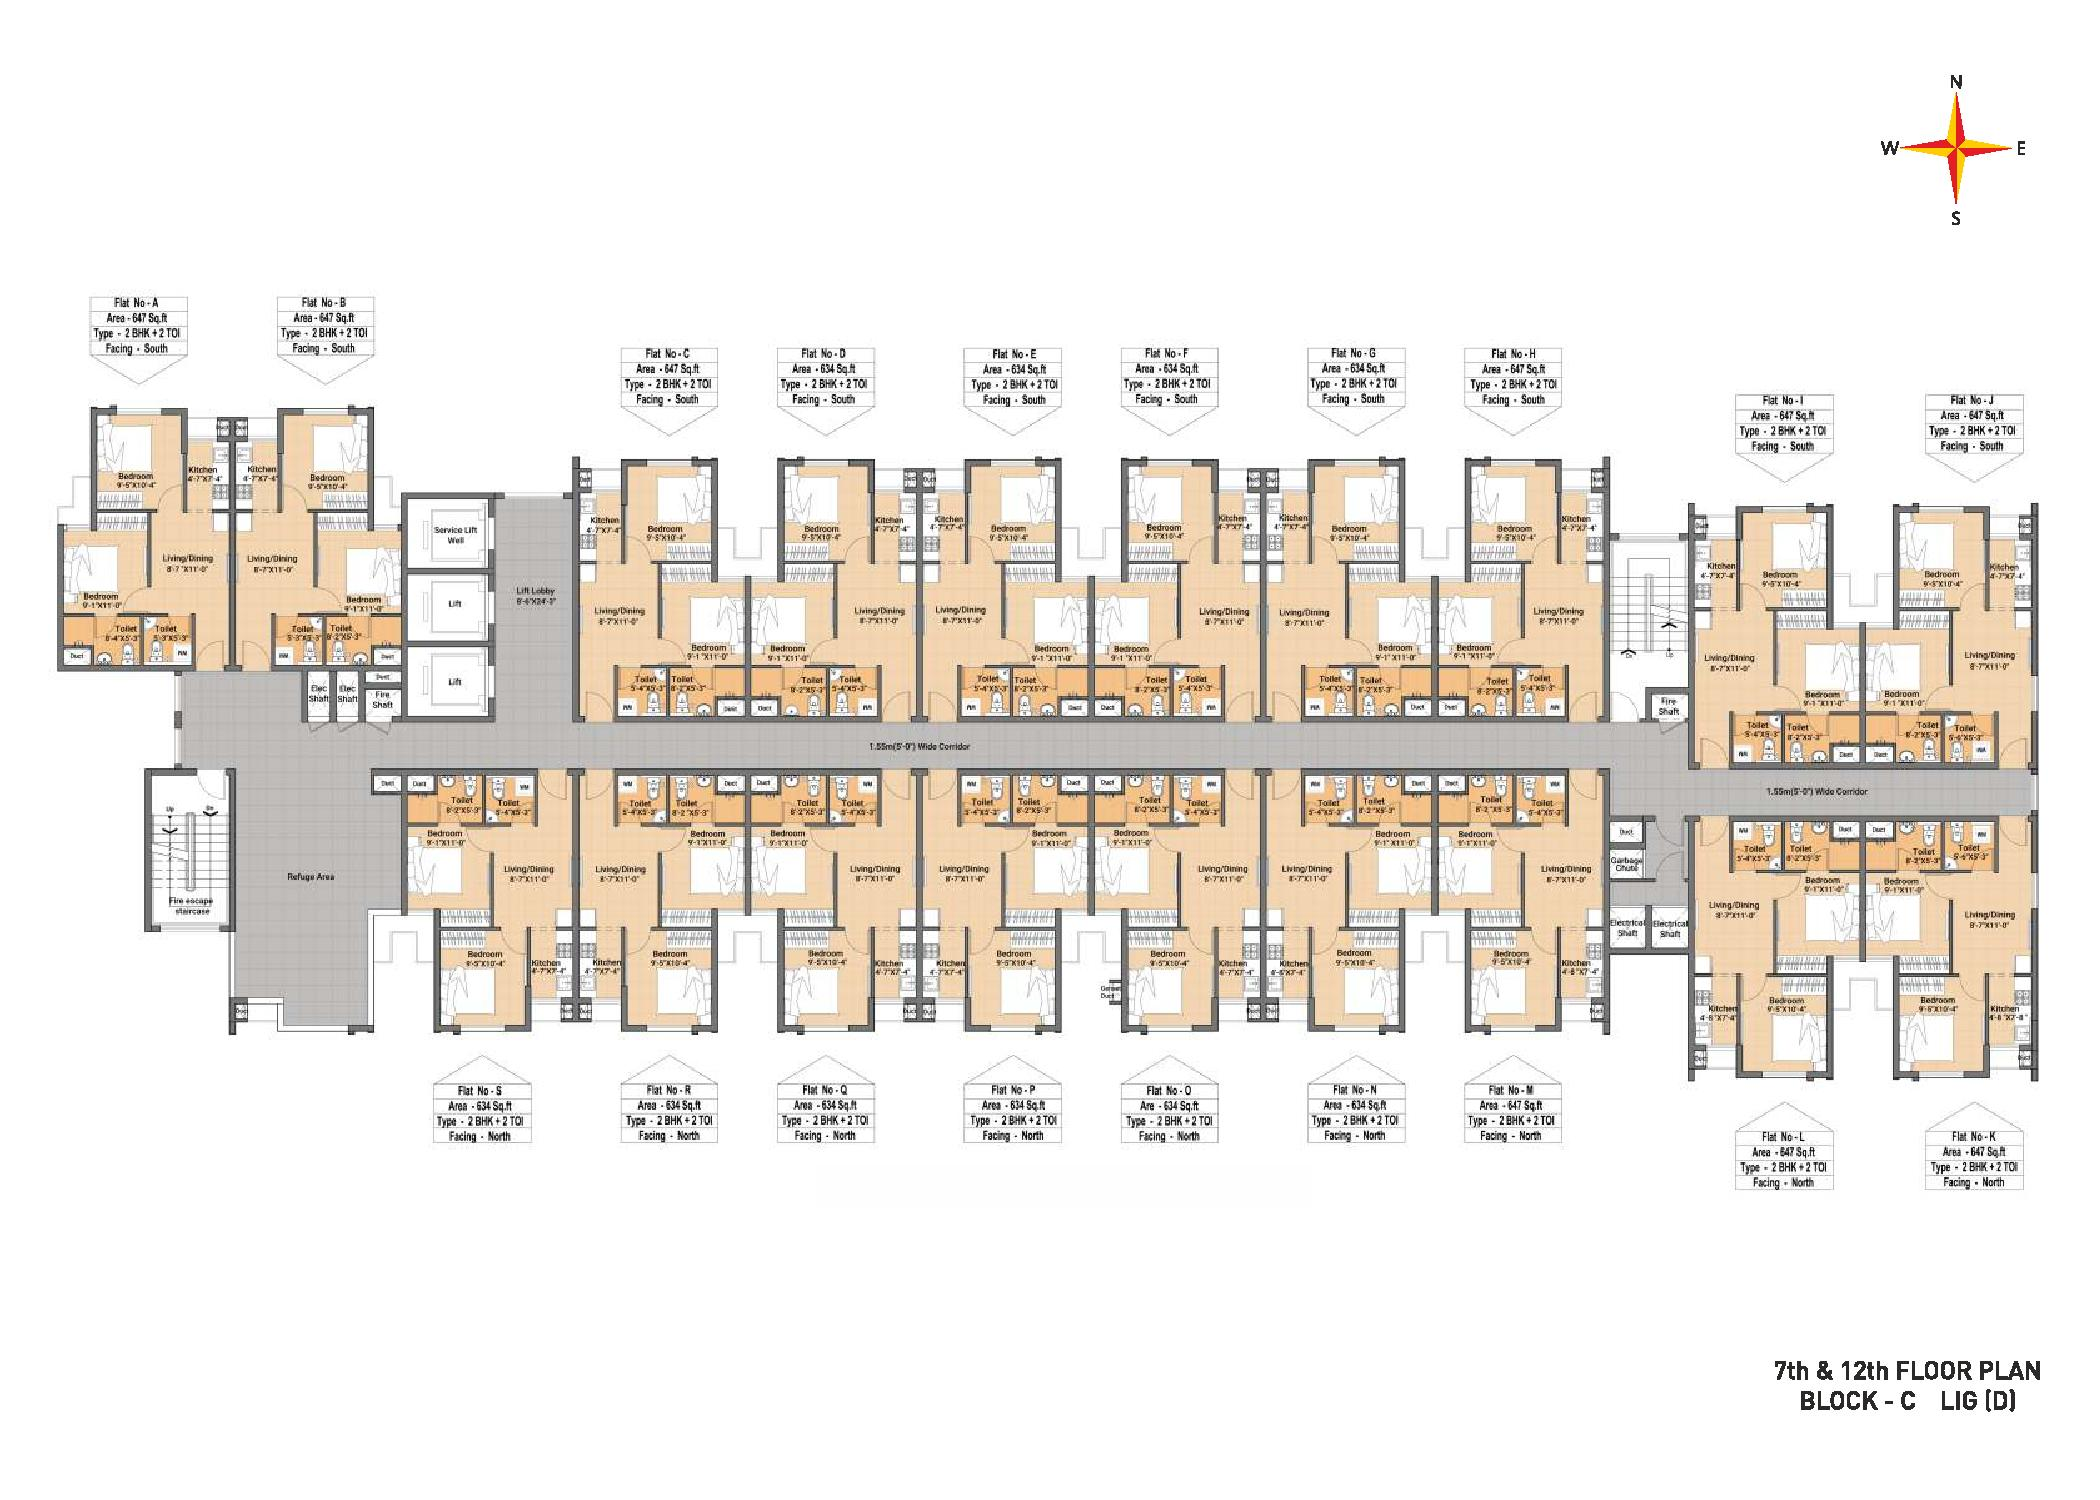 Typical Floor plan Block C LIG(D) 7th & 12th Floor plan